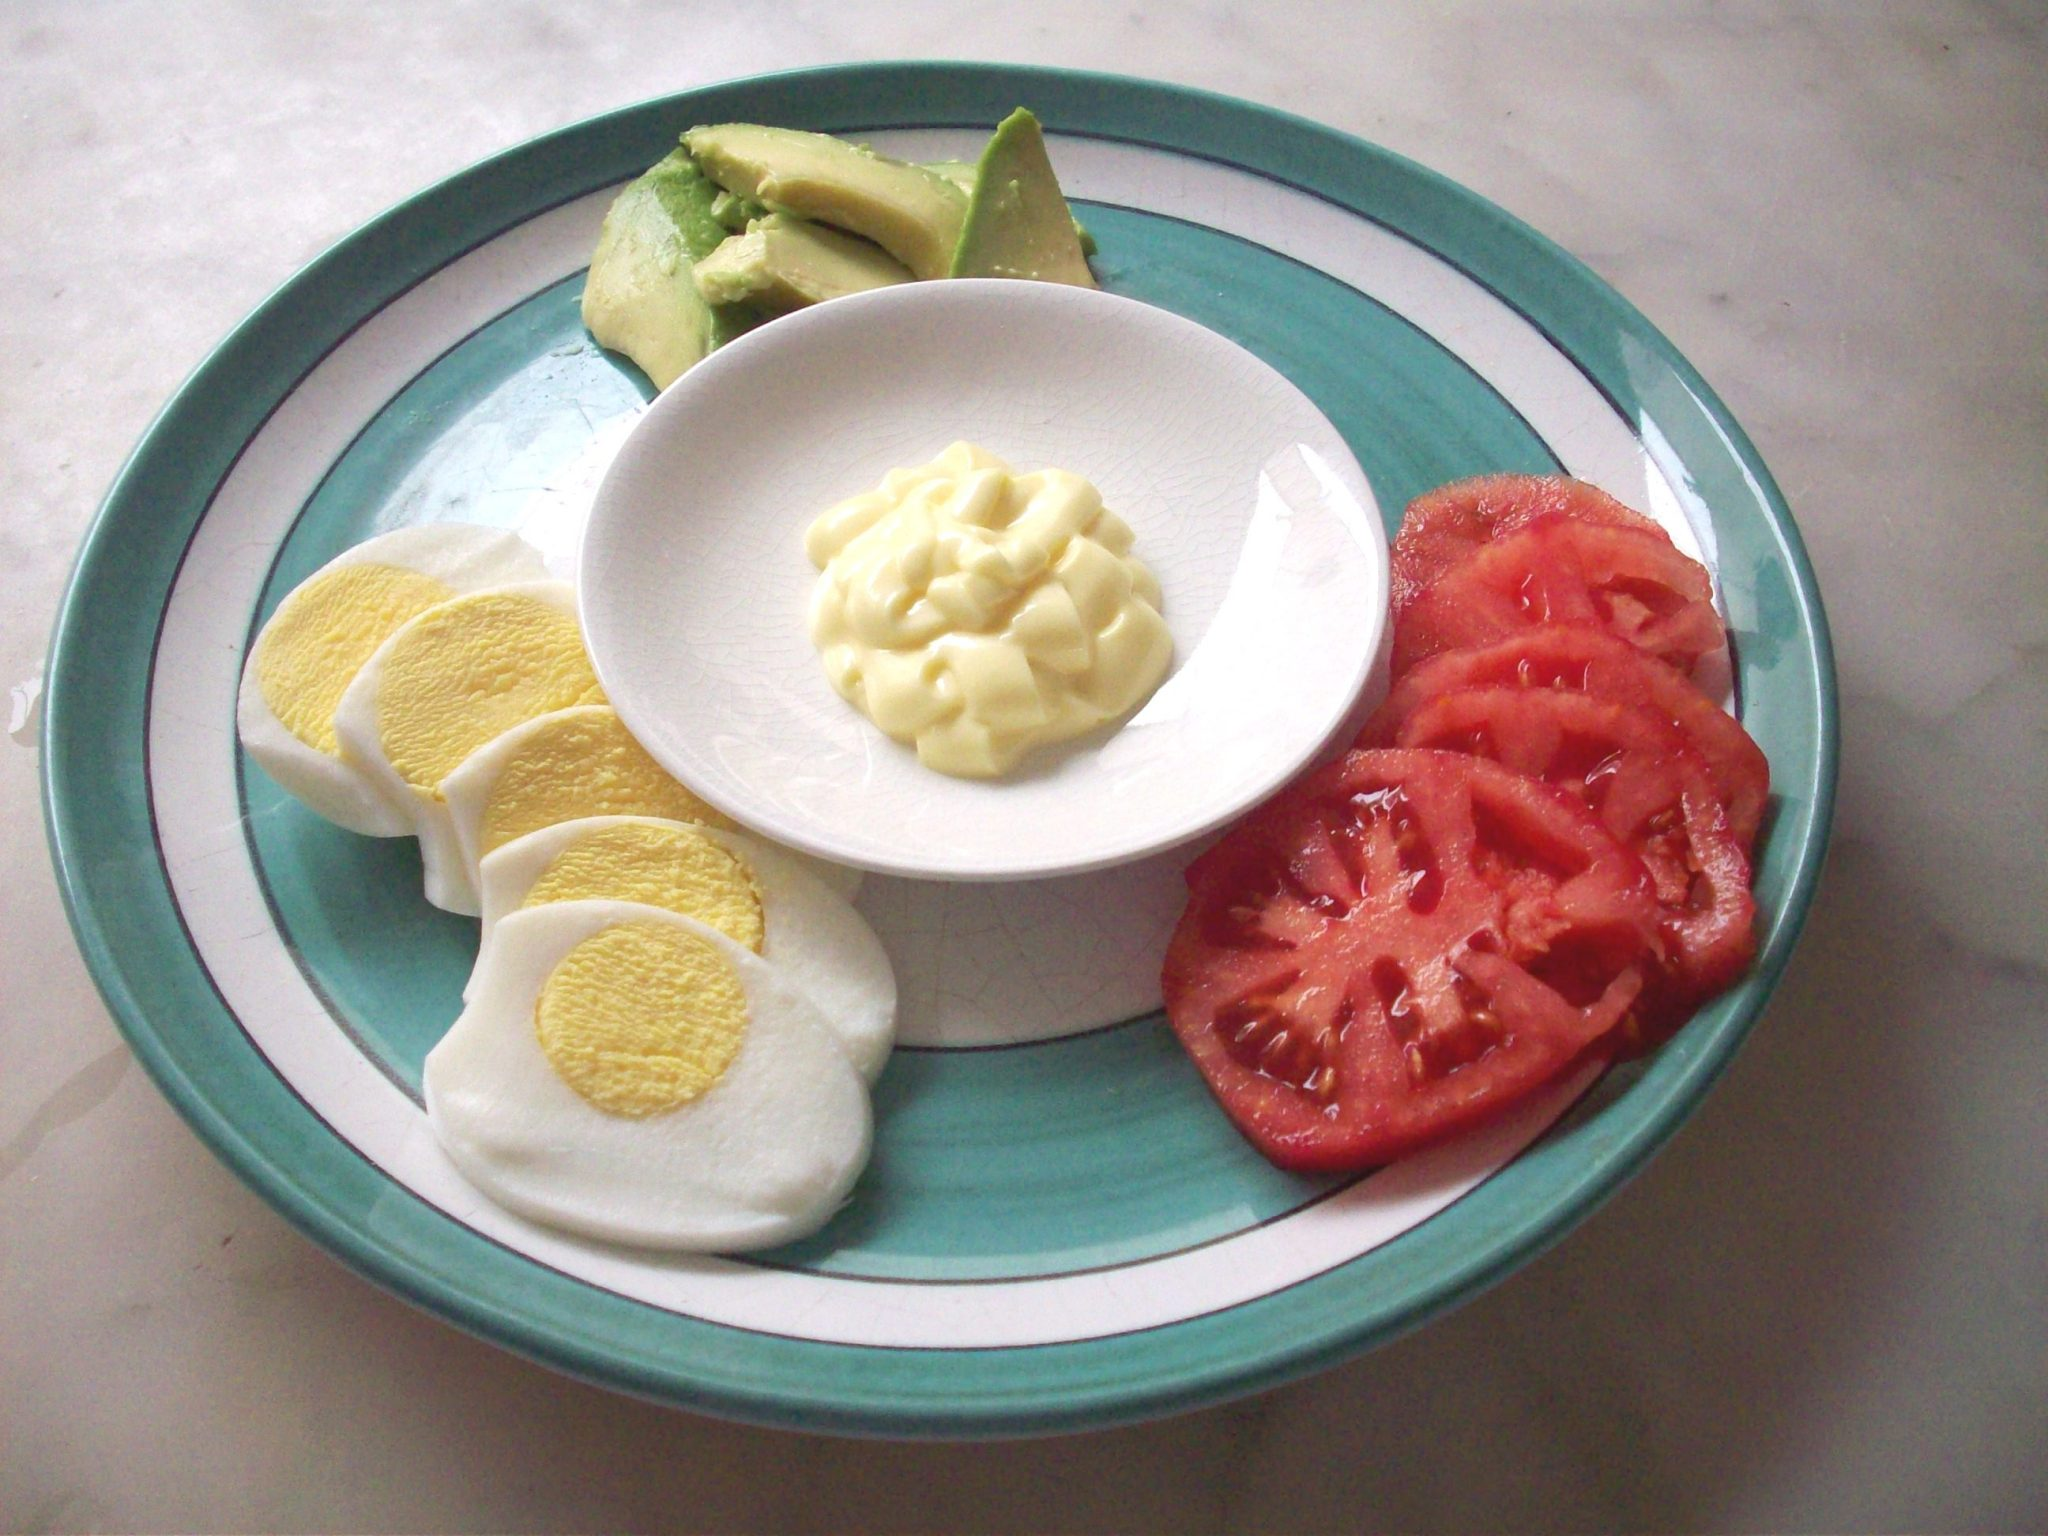 A plate with mayonnaise, sliced tomatoes, avocado, and hardboiled eggs